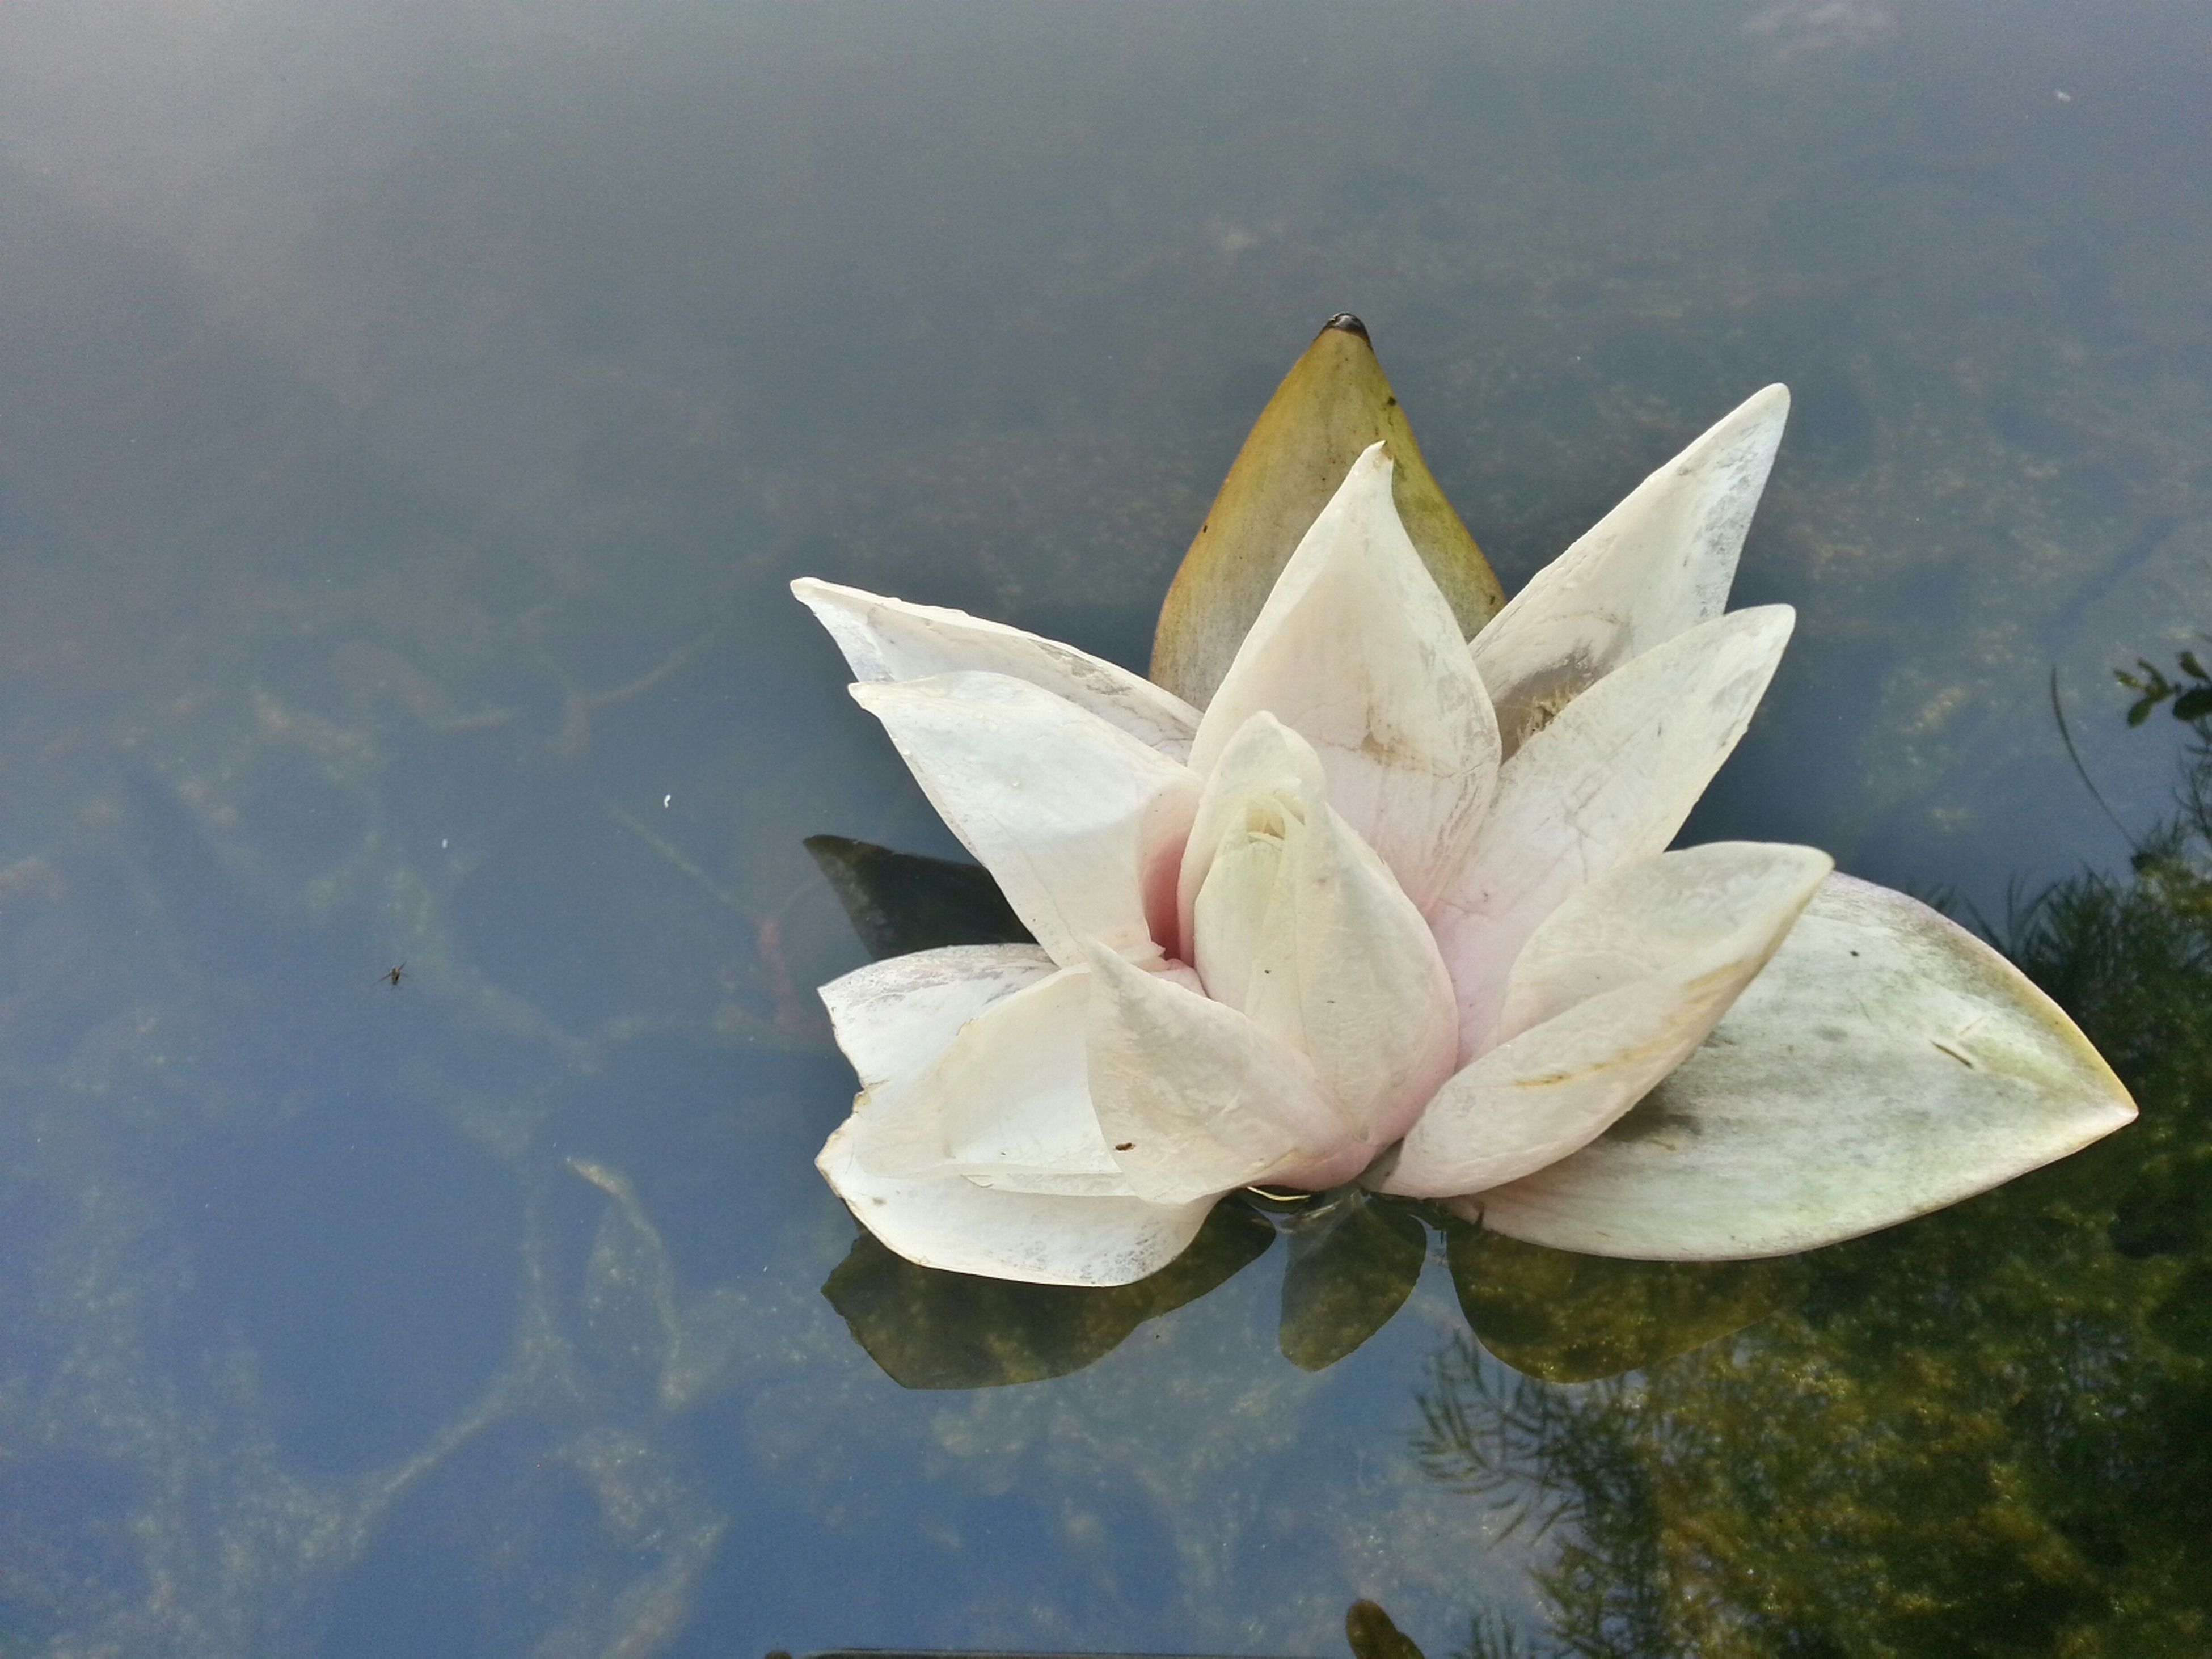 flower, petal, water, fragility, flower head, freshness, beauty in nature, water lily, nature, pond, growth, floating on water, leaf, white color, lake, plant, single flower, close-up, blooming, reflection